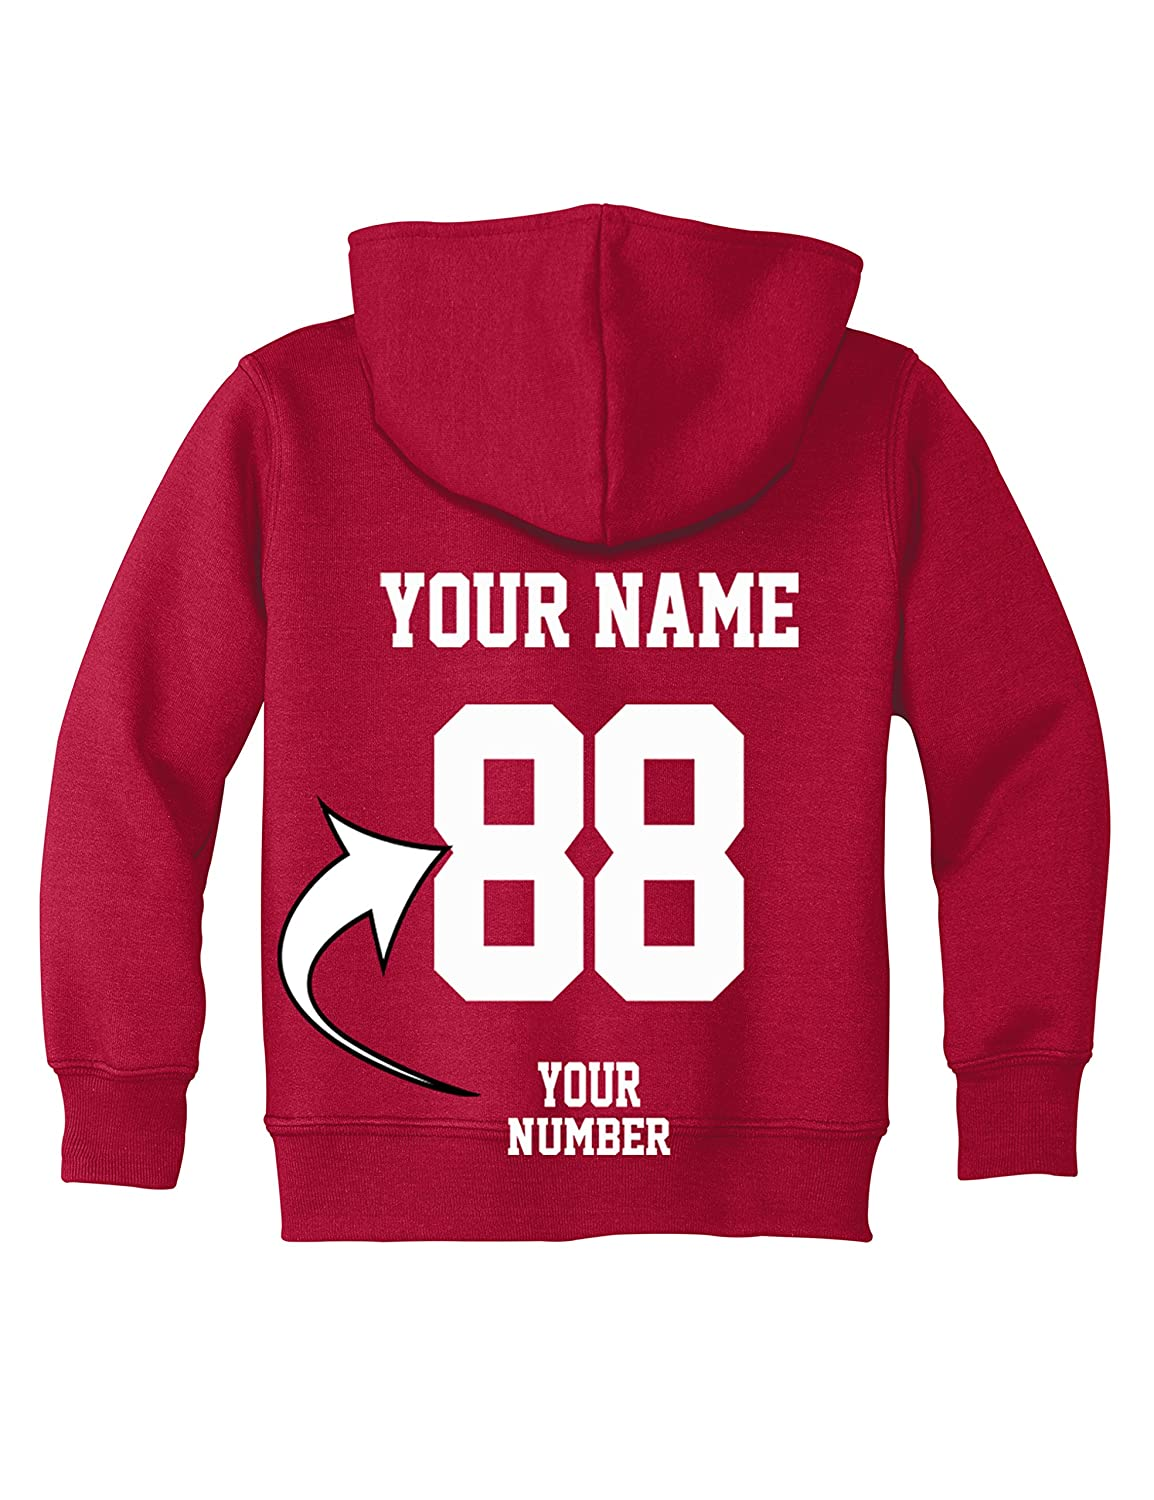 Design Your OWN Jersey Sweatshirt for Kids Custom Toddler Hoodies Hooded Team Sweaters